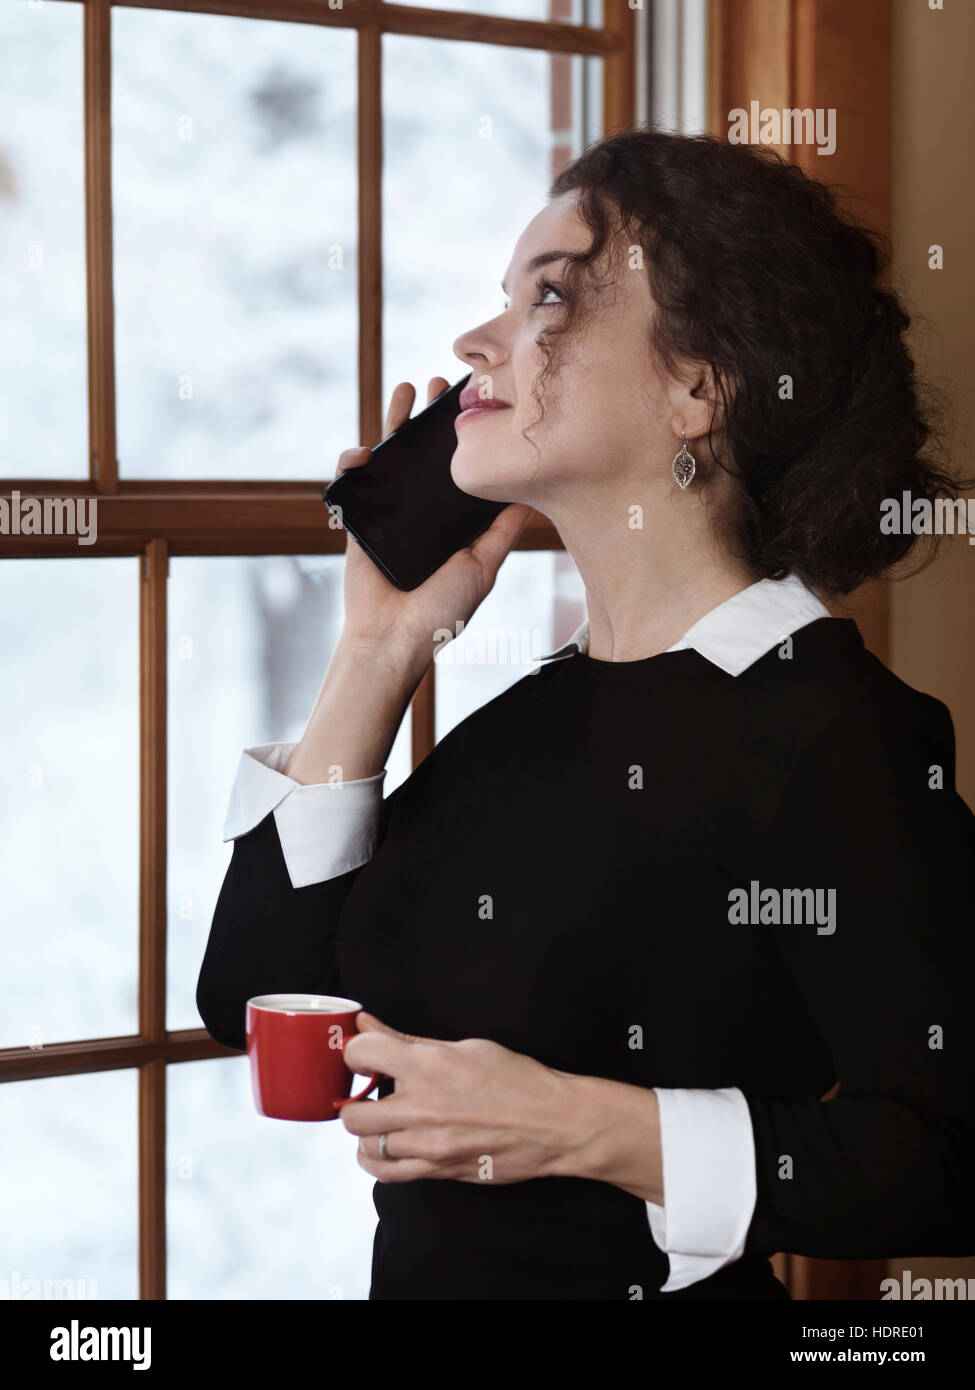 Woman with a cup of coffee talking on the phone by a window with a snowy winter scenery behind it. Apple iPhone Stock Photo